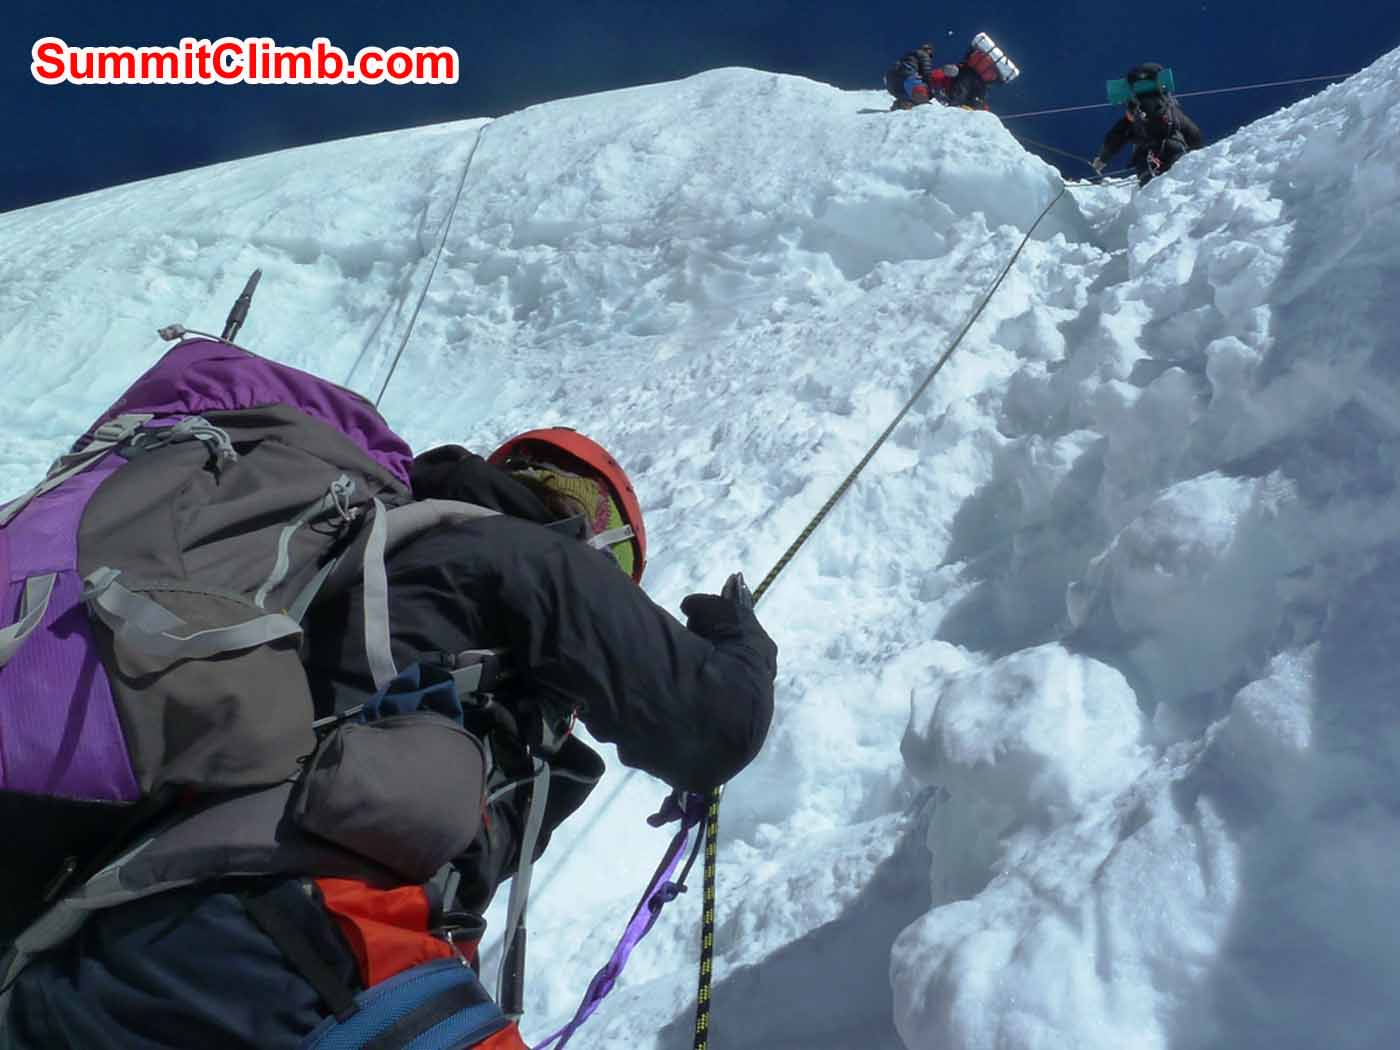 Marina, Andre, and Allen in the ice step. Jangbu Sherpa Photo